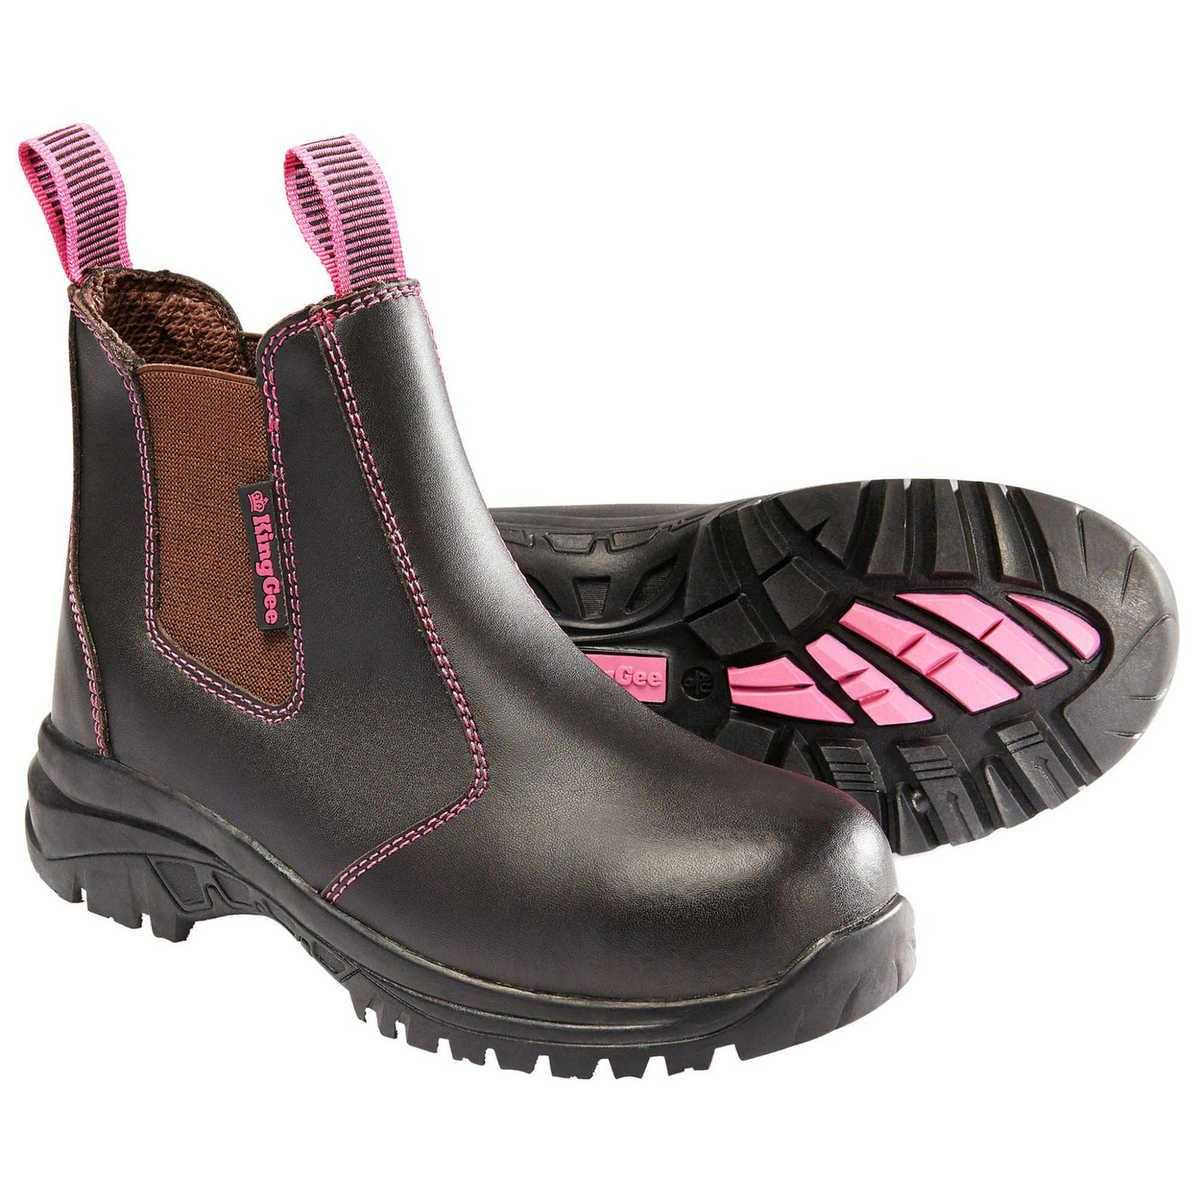 Ladies Work Boots - Boot Yc 9f3c40d14ff2